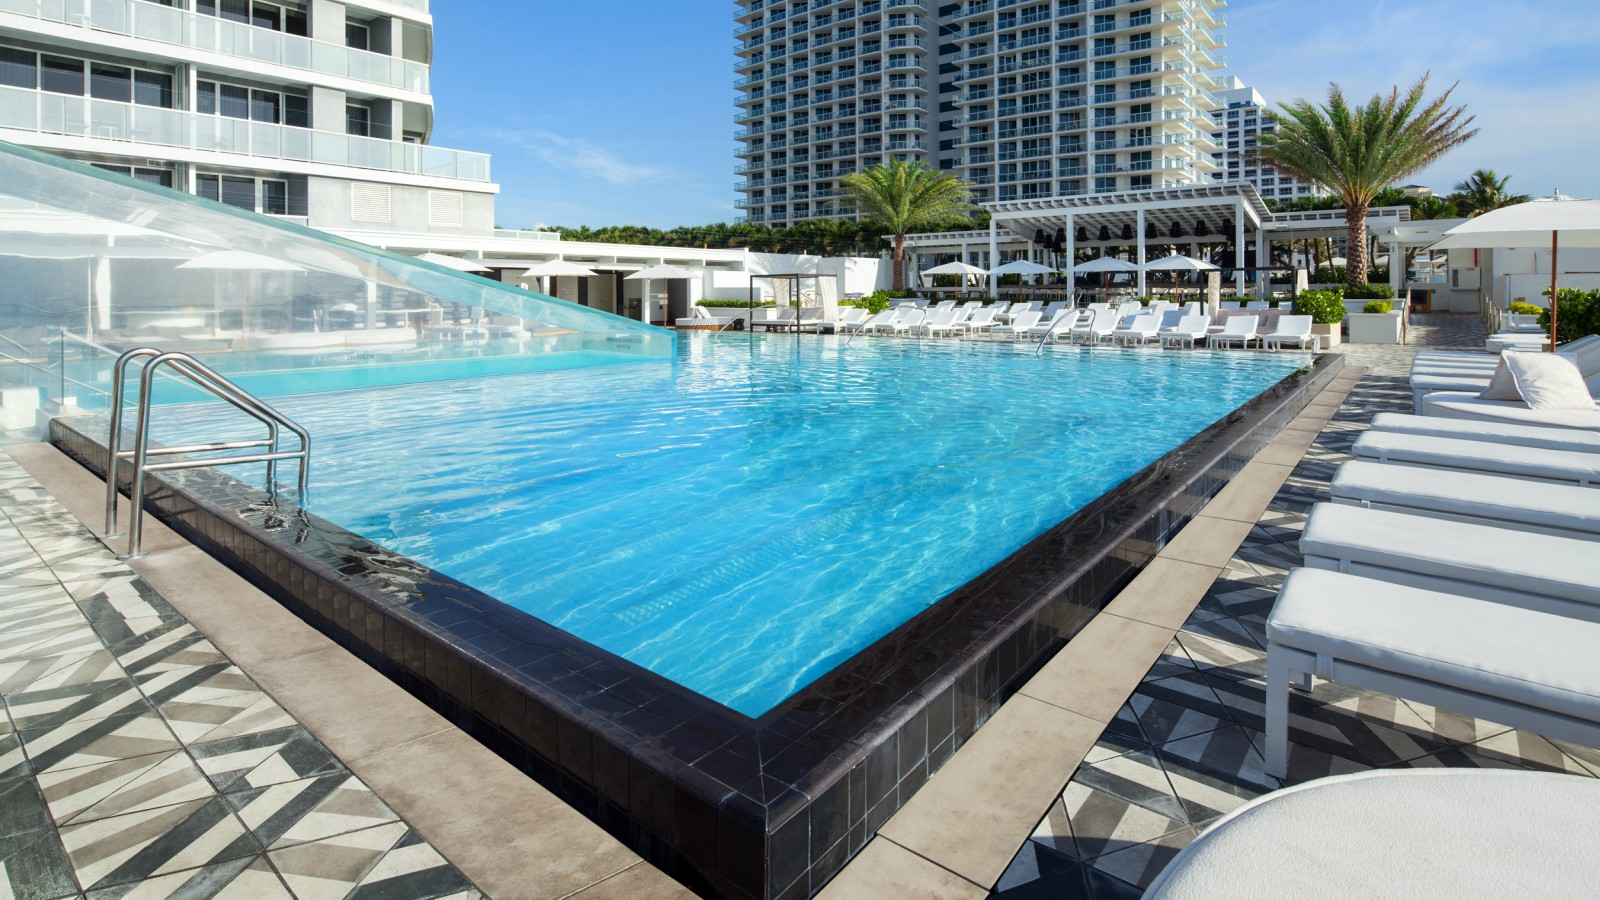 Fort Lauderdale Luxury Hotels W Fort Lauderdale Wet